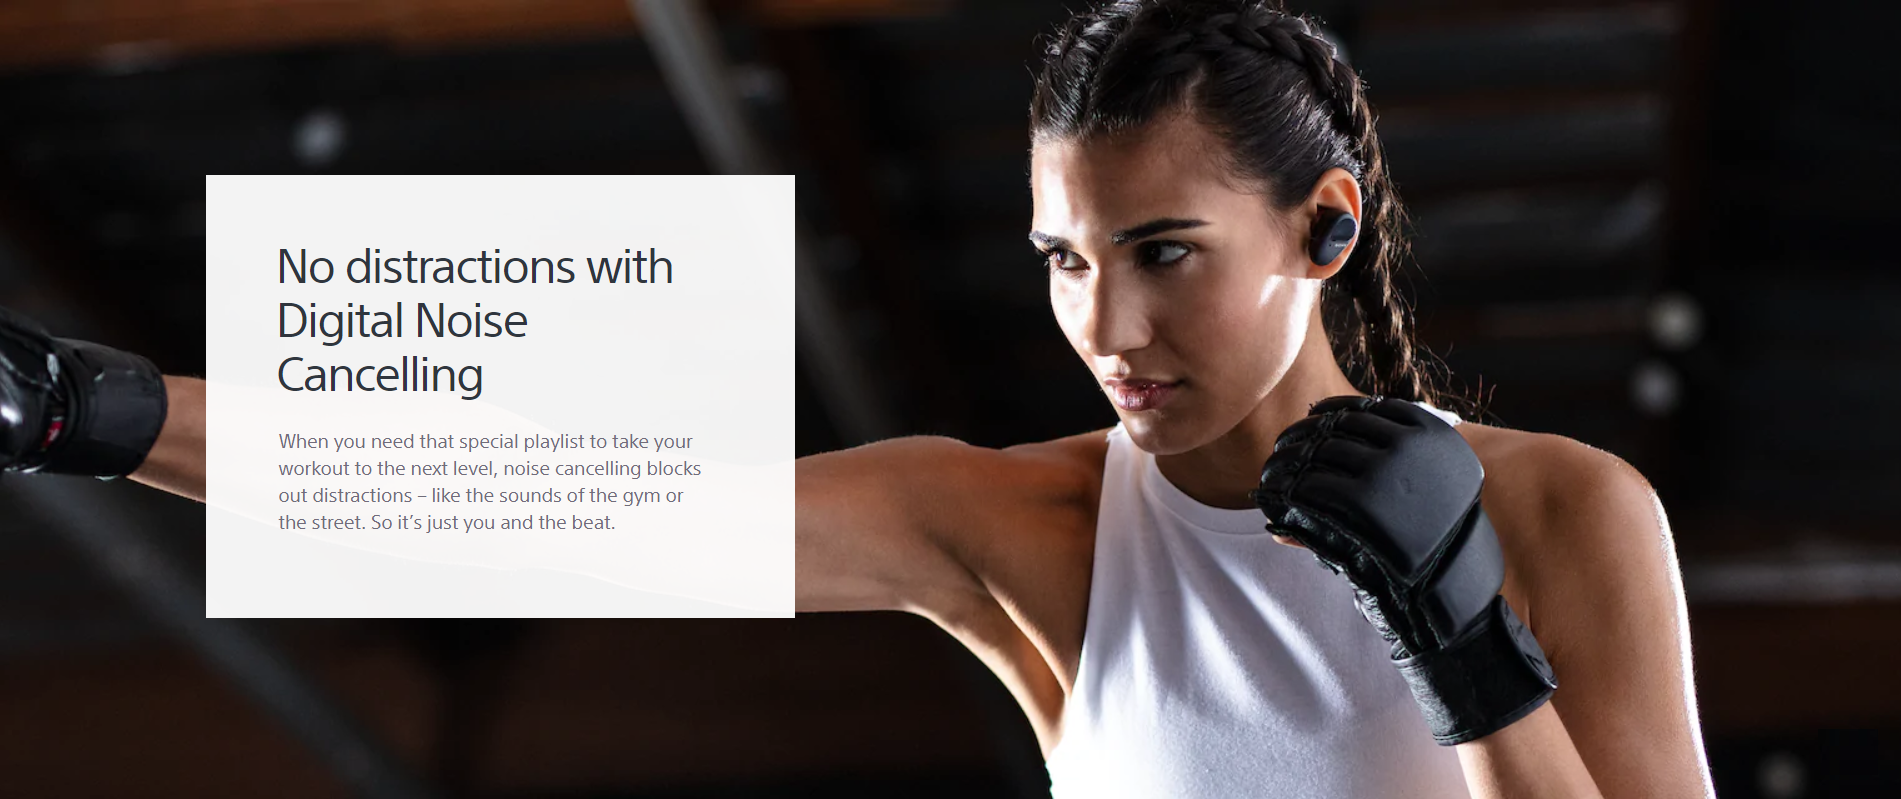 No distractions with Digital Noise Cancelling - When you need that special playlist to take your workout to the next level, noise cancelling blocks out distractions – like the sounds of the gym or the street. So it's just you and the beat.